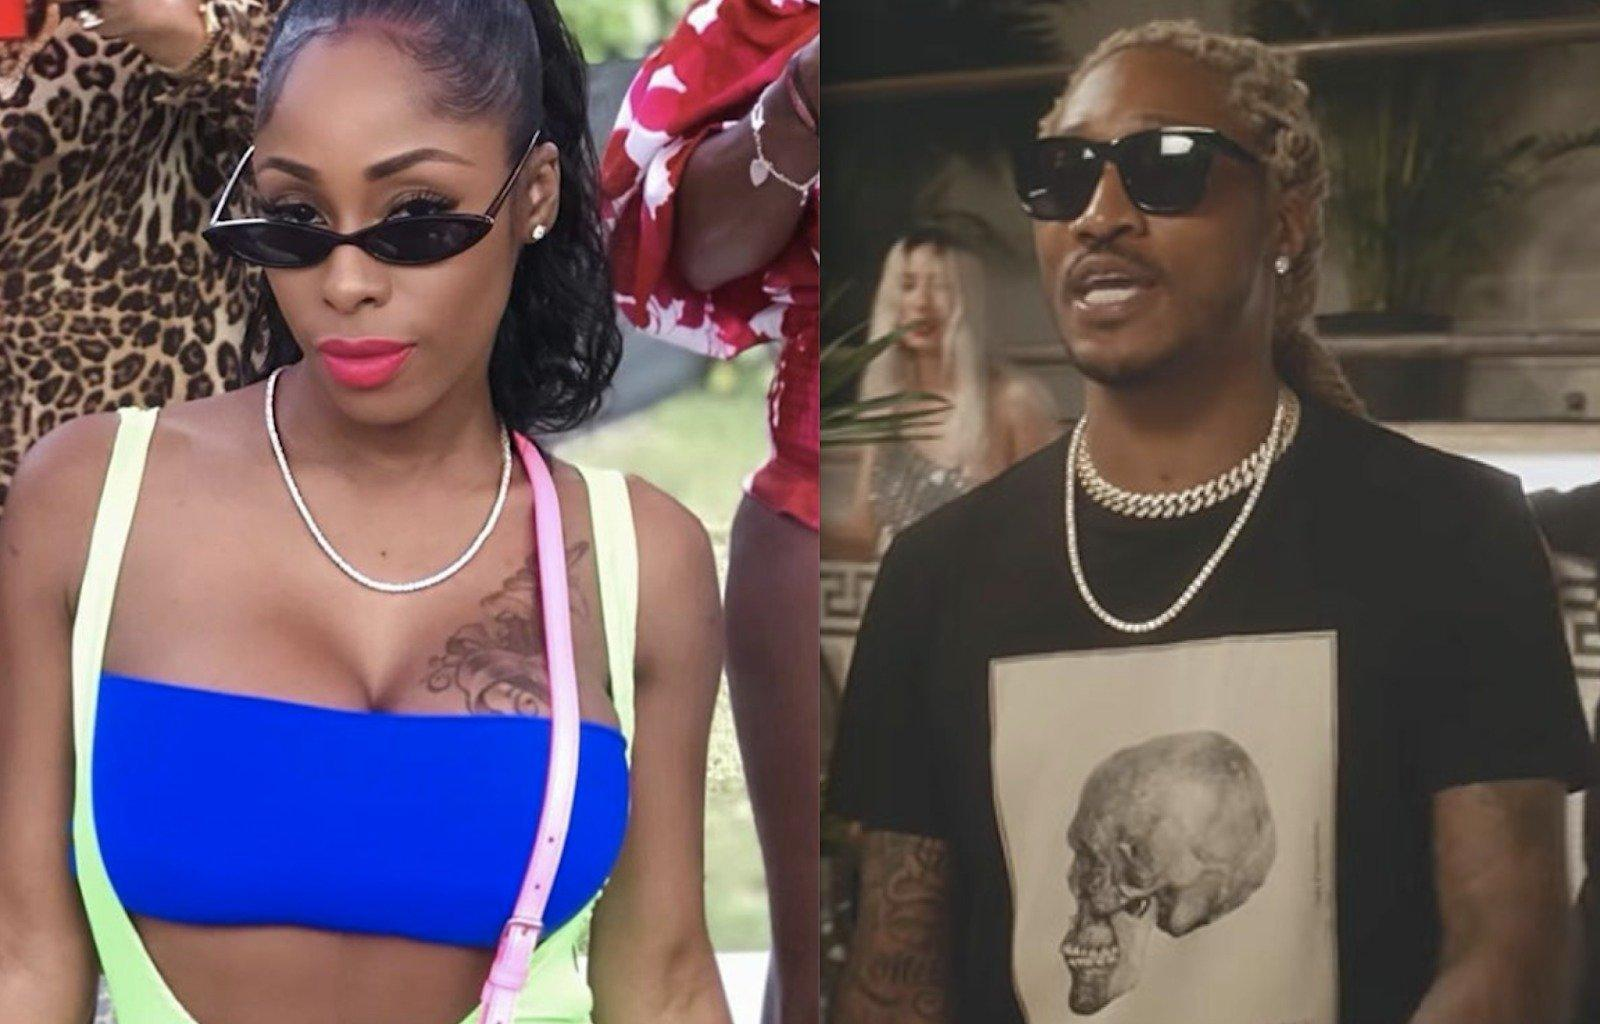 Future Is Accused Of Providing Fake Info In Child Support Case - Find Out What He Said!